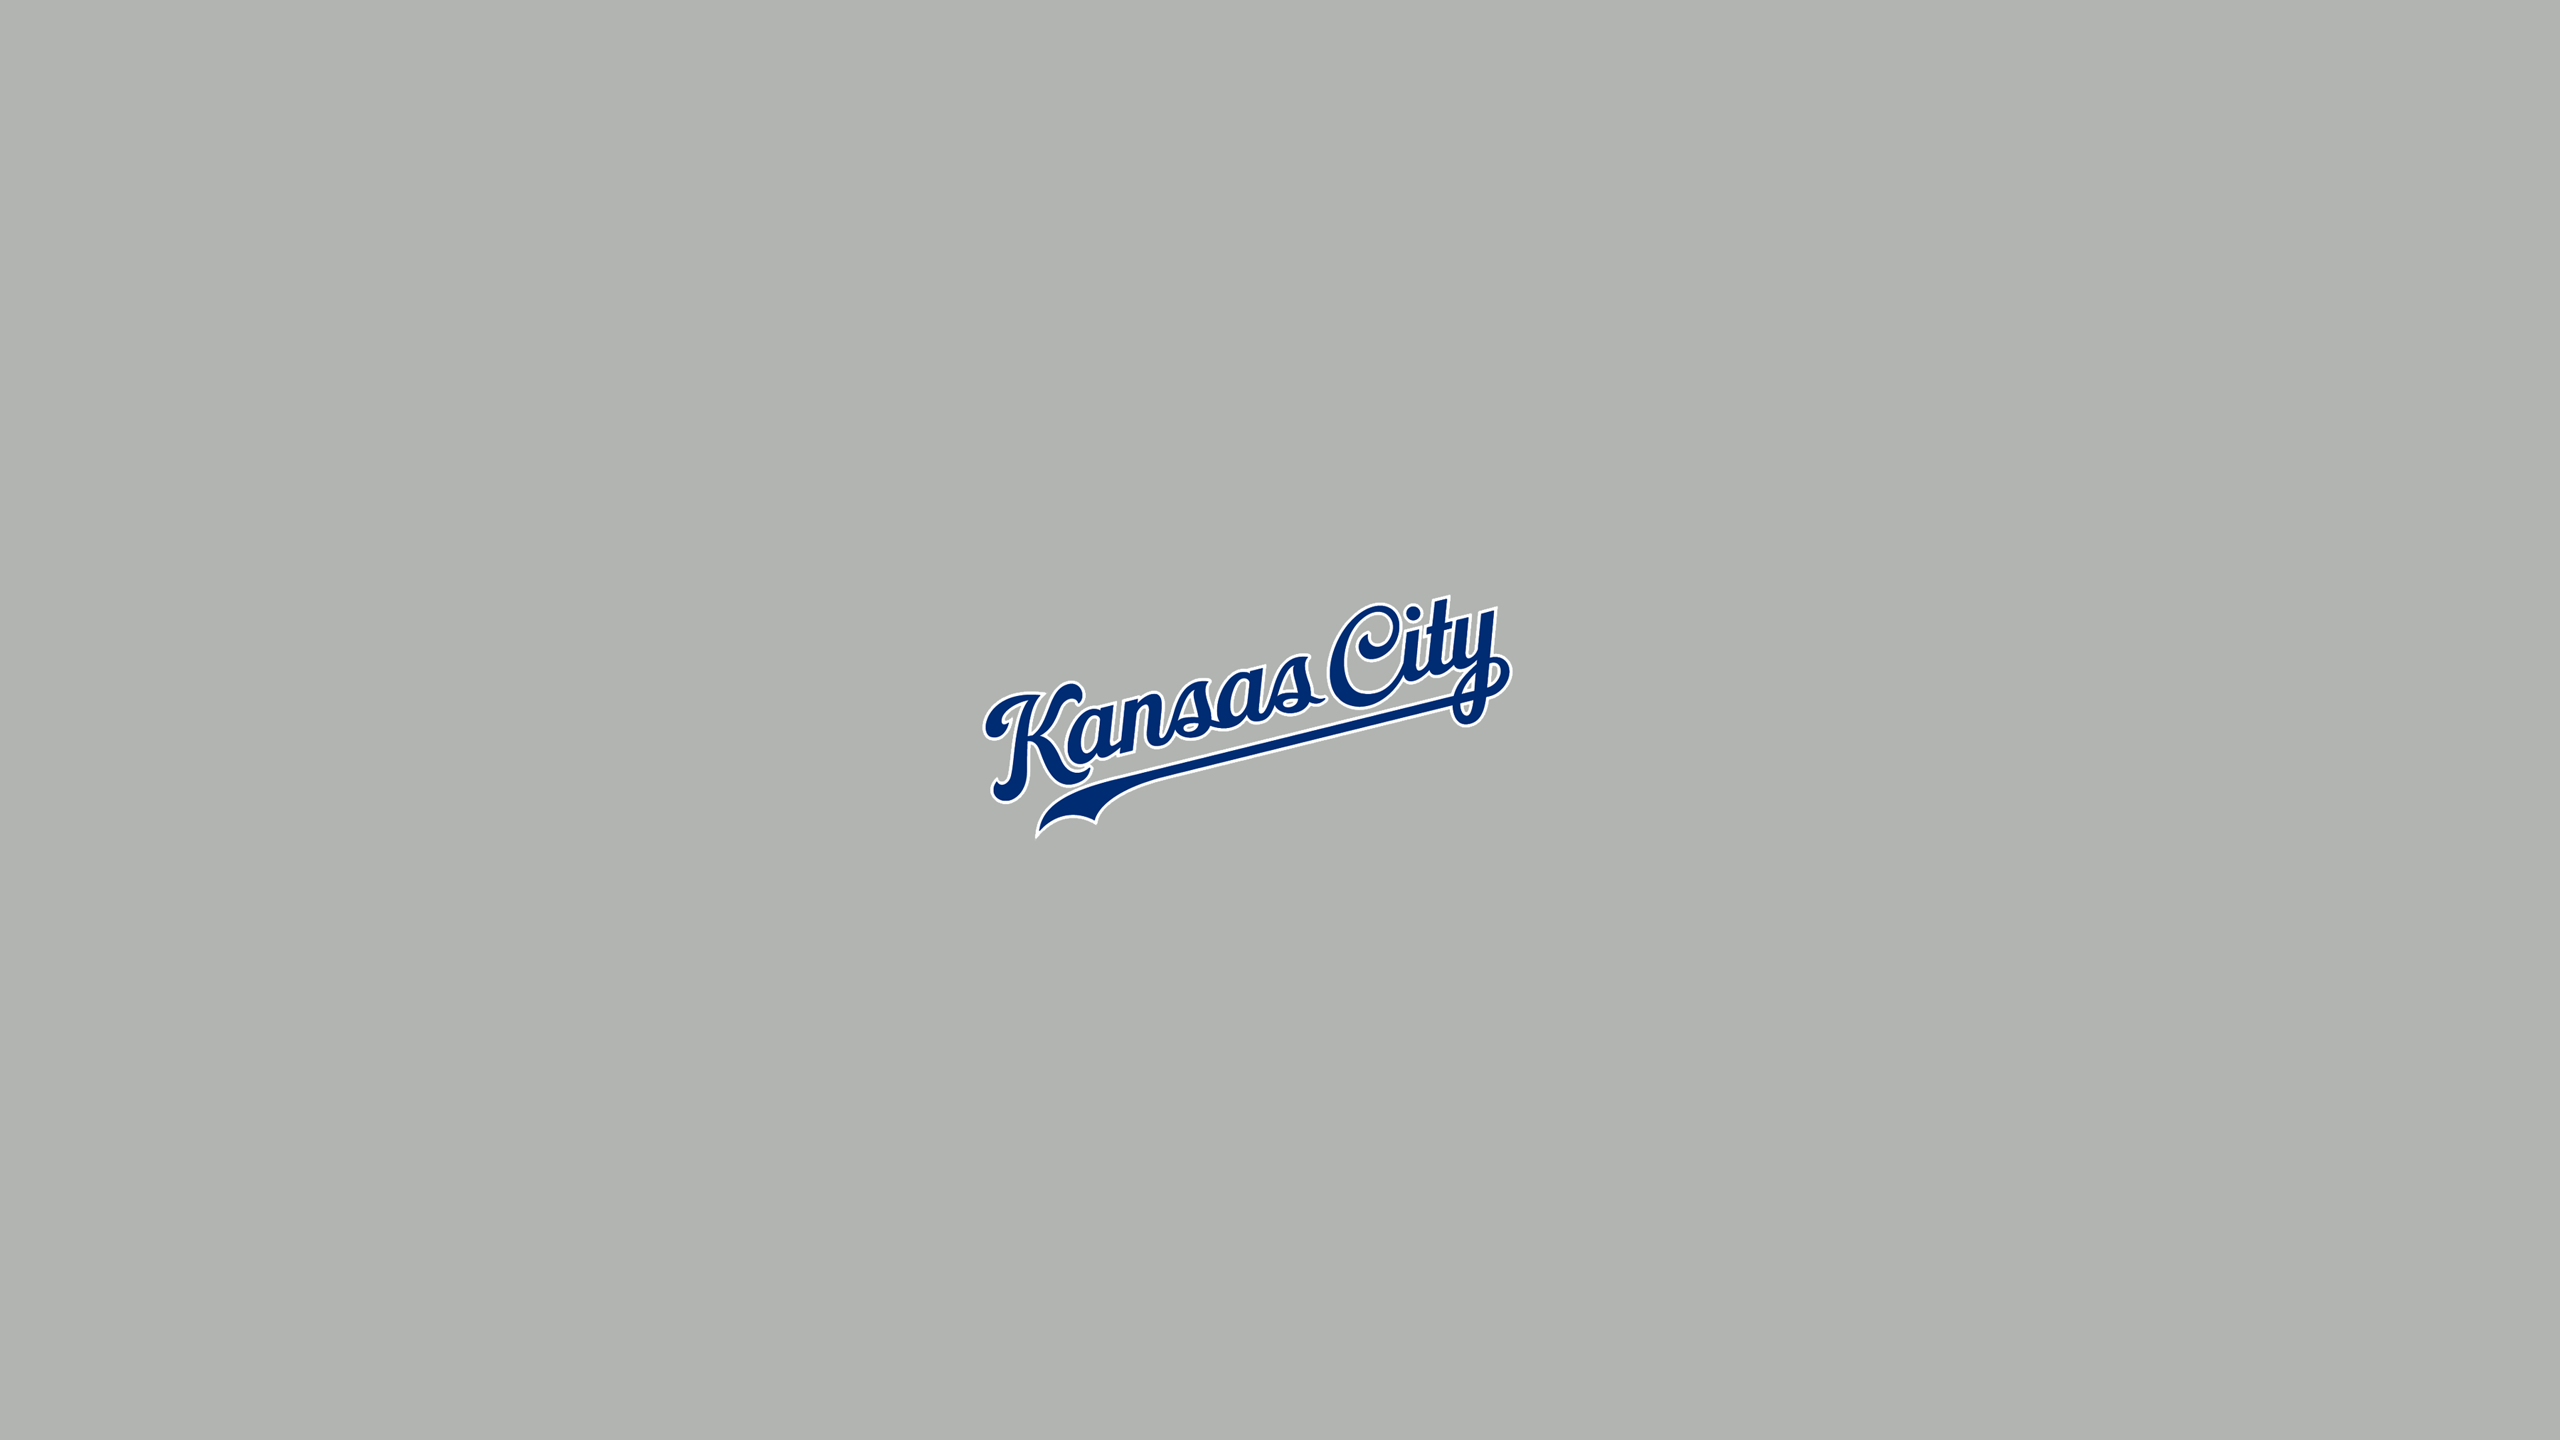 Kansas City Royals (Away)